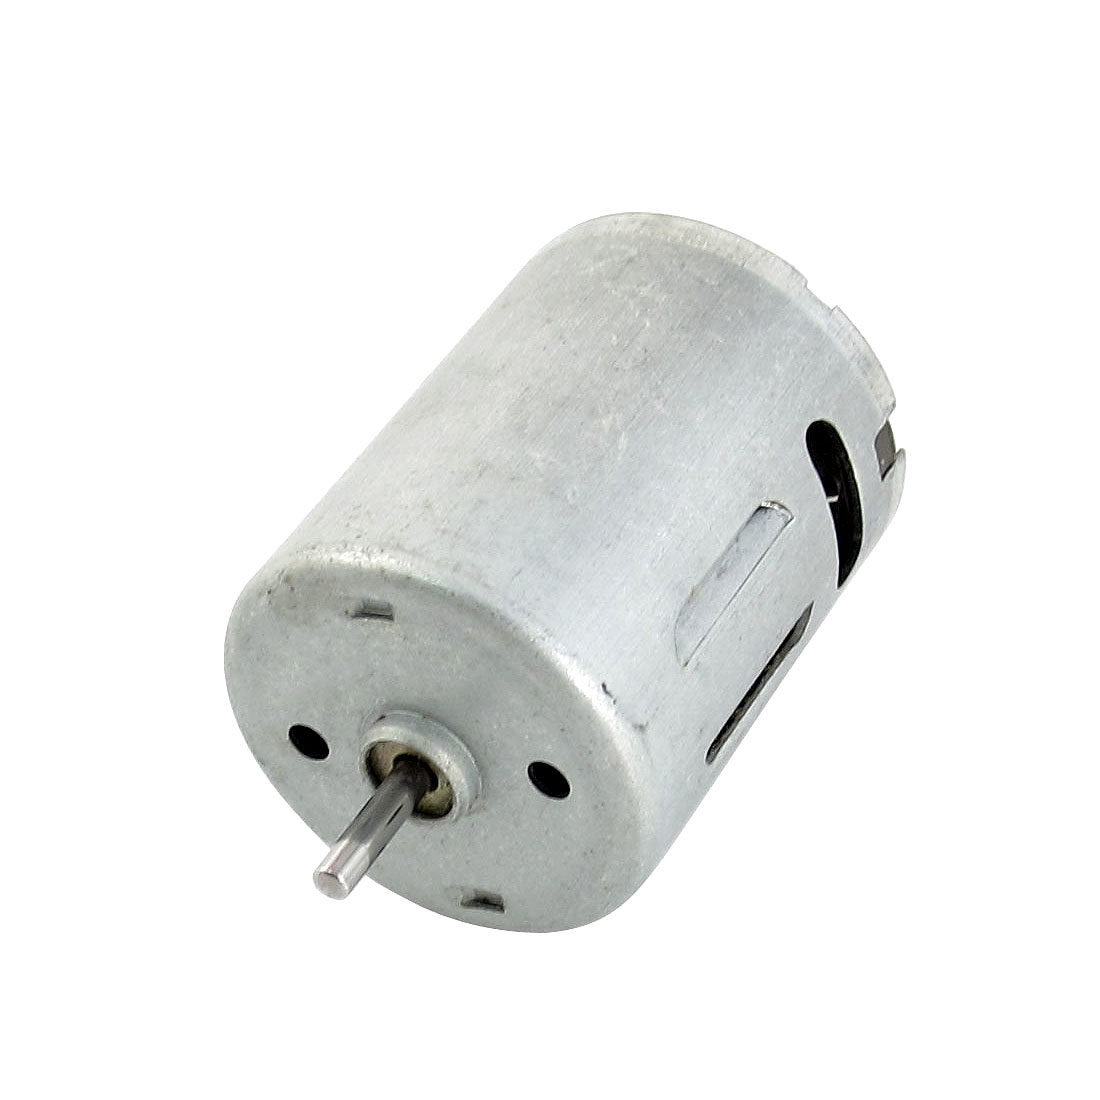 DC6V 2mm Shaft 2Pin 2250 r/min Rotary Speed Output Cylinder Magnet Electric Motor GA25-370